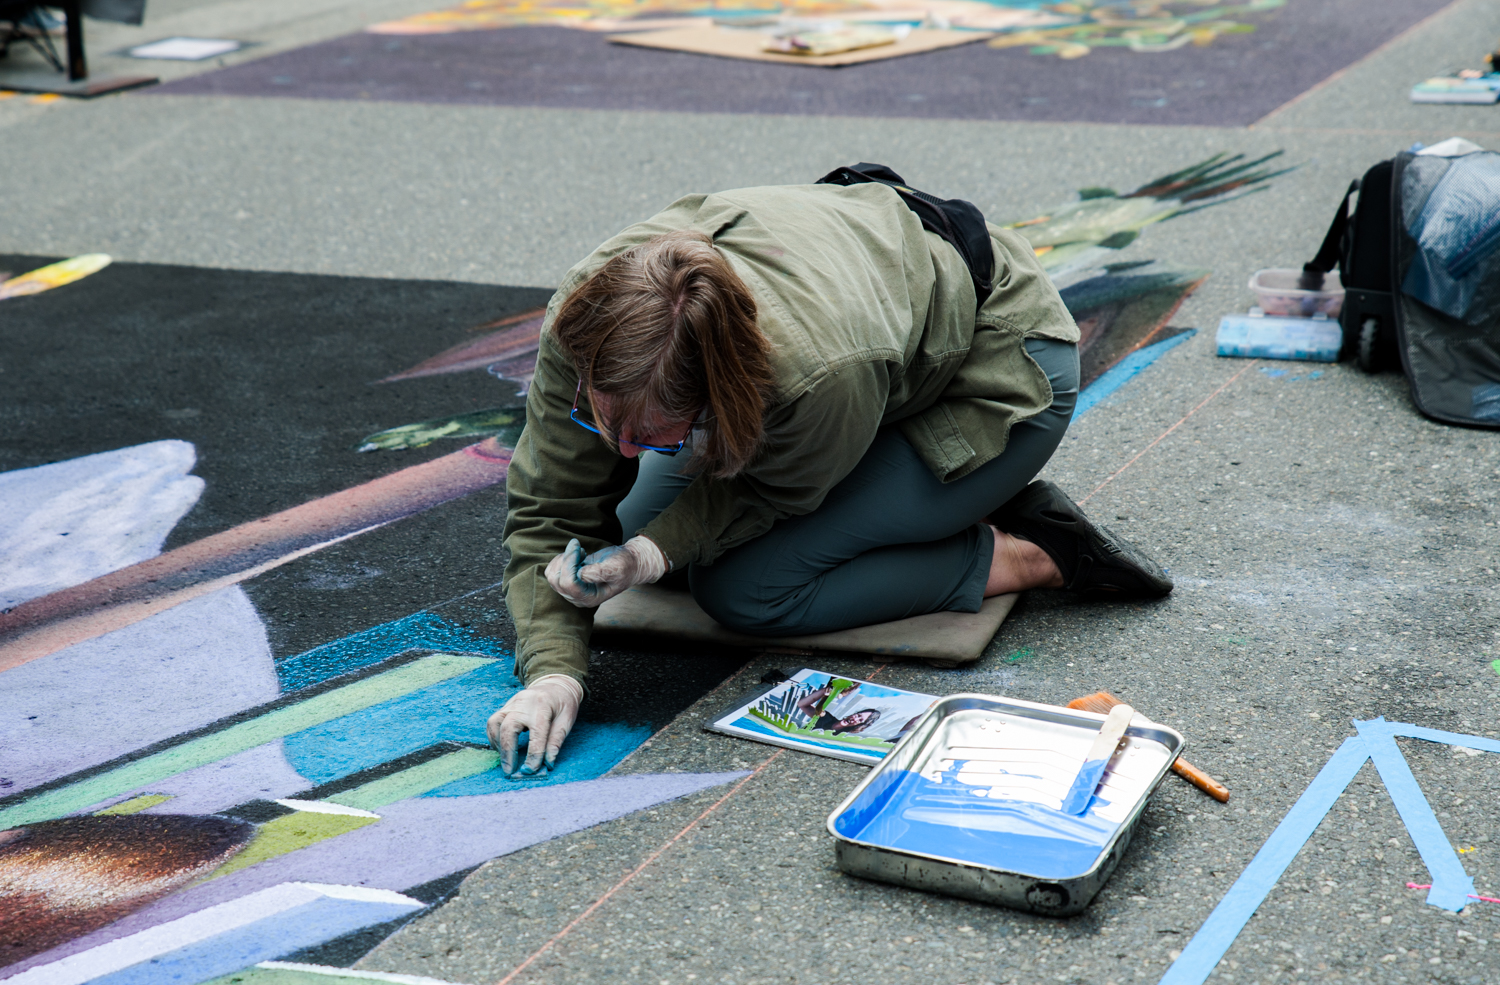 Over 50,000 people from all over the country came to Redmond, WA this past weekend to see chalk artists create stunning murals on the streets. Artists were given free rein to create whatever they wished, which resulted in an amazing variety of works that will last until the next rain! (Image: Elizabeth Crook / Seattle Refined)